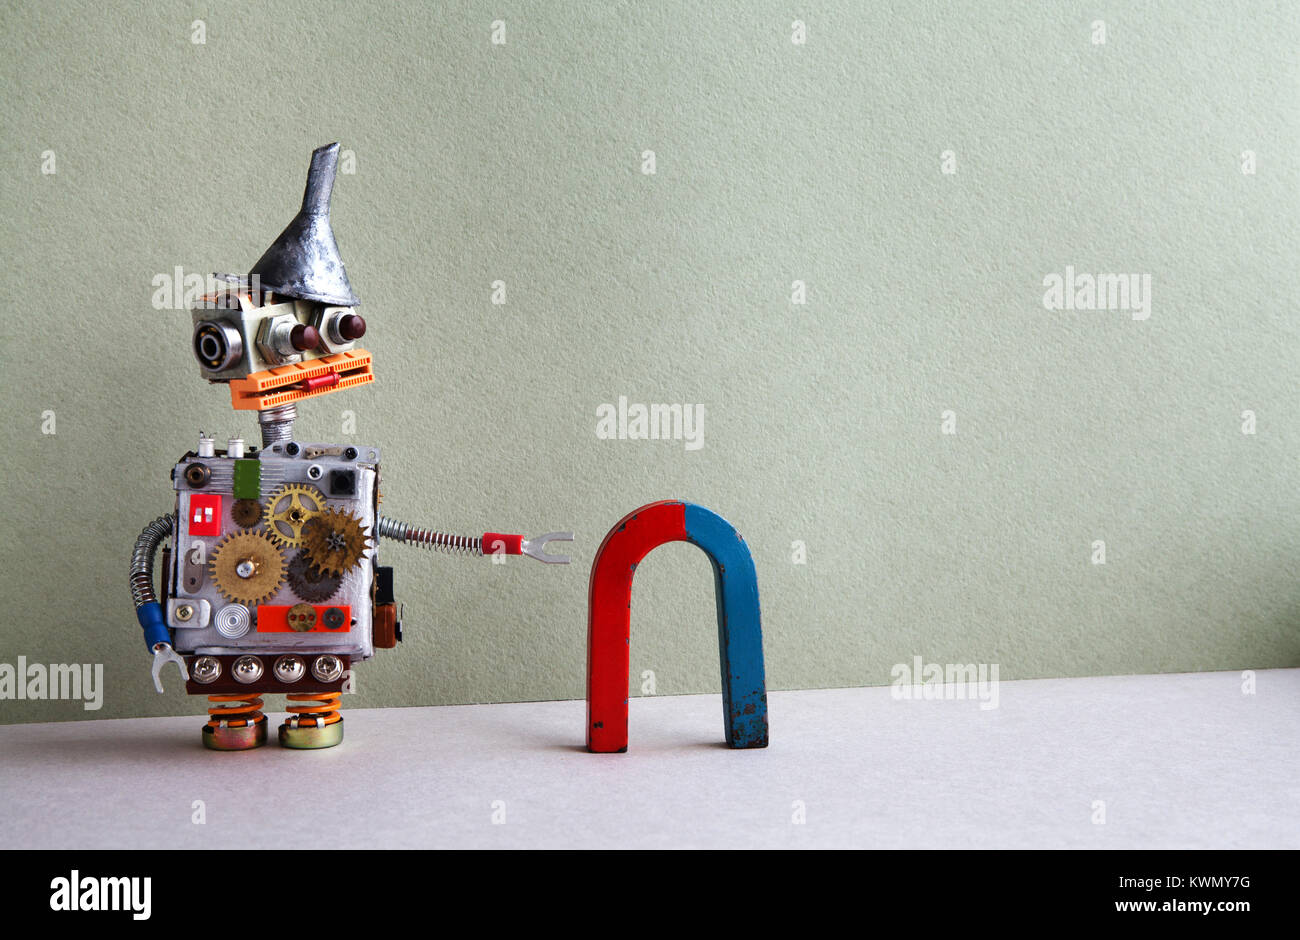 Funny robot red blue horseshoe magnet. Creative design toy funnel hopper, cogs wheels gears silver metallic body. - Stock Image